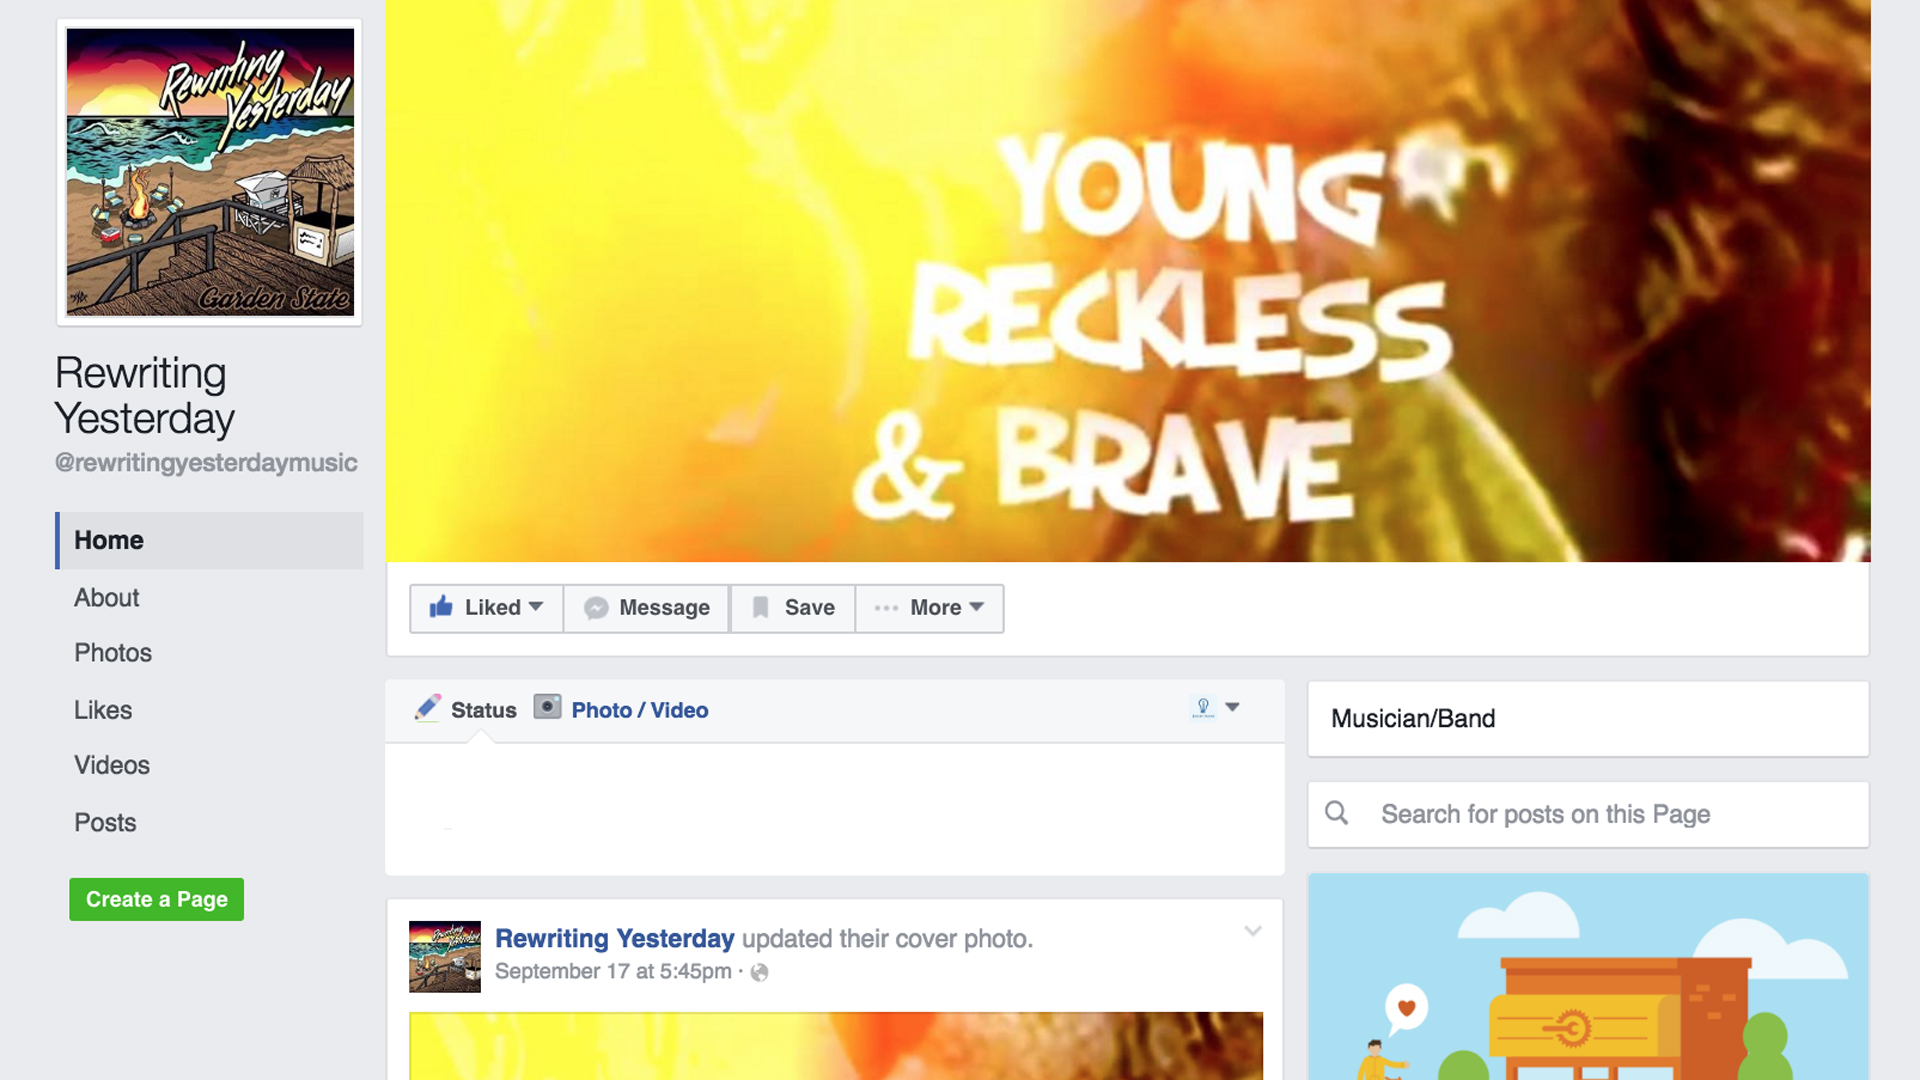 facebook.com/rewritingyesterdaymusic